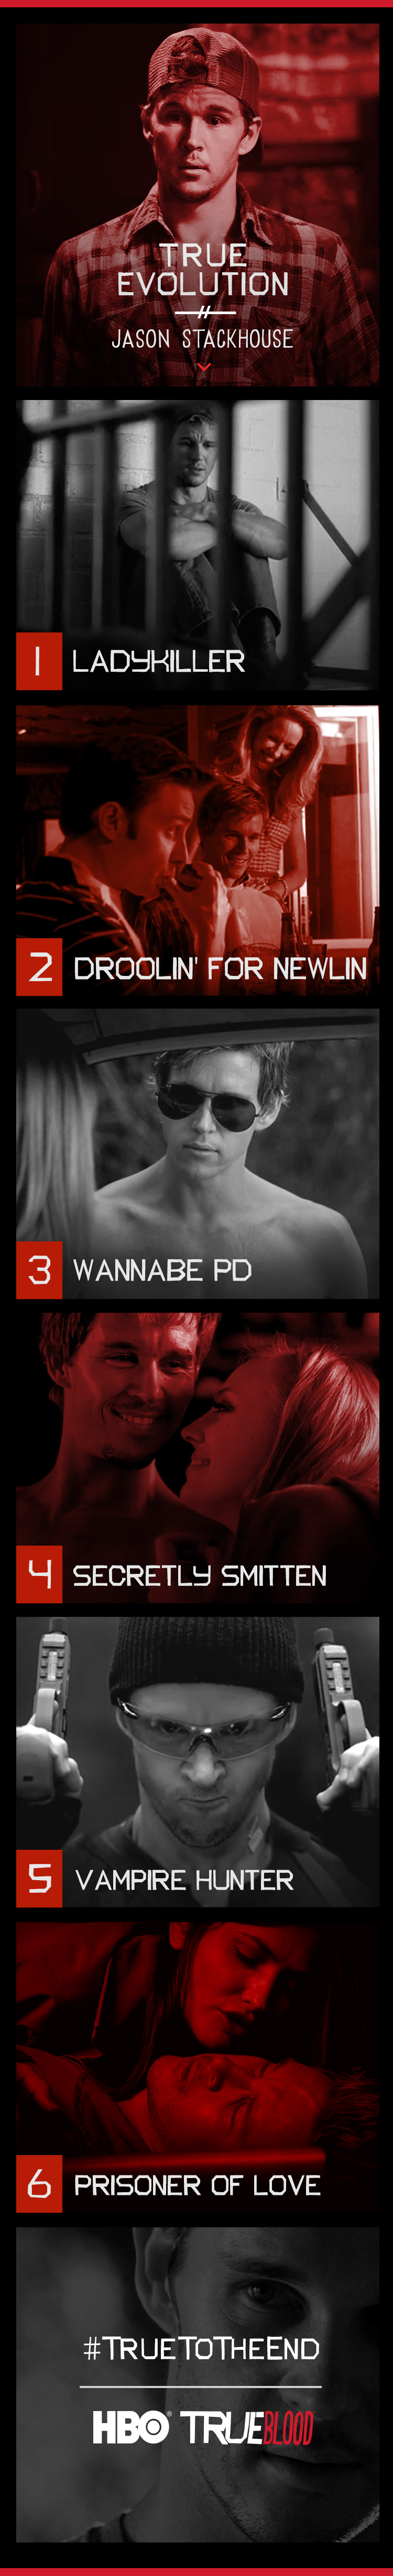 Jason Stackhouse, as played by Ryan Kwanten, on True Blood.